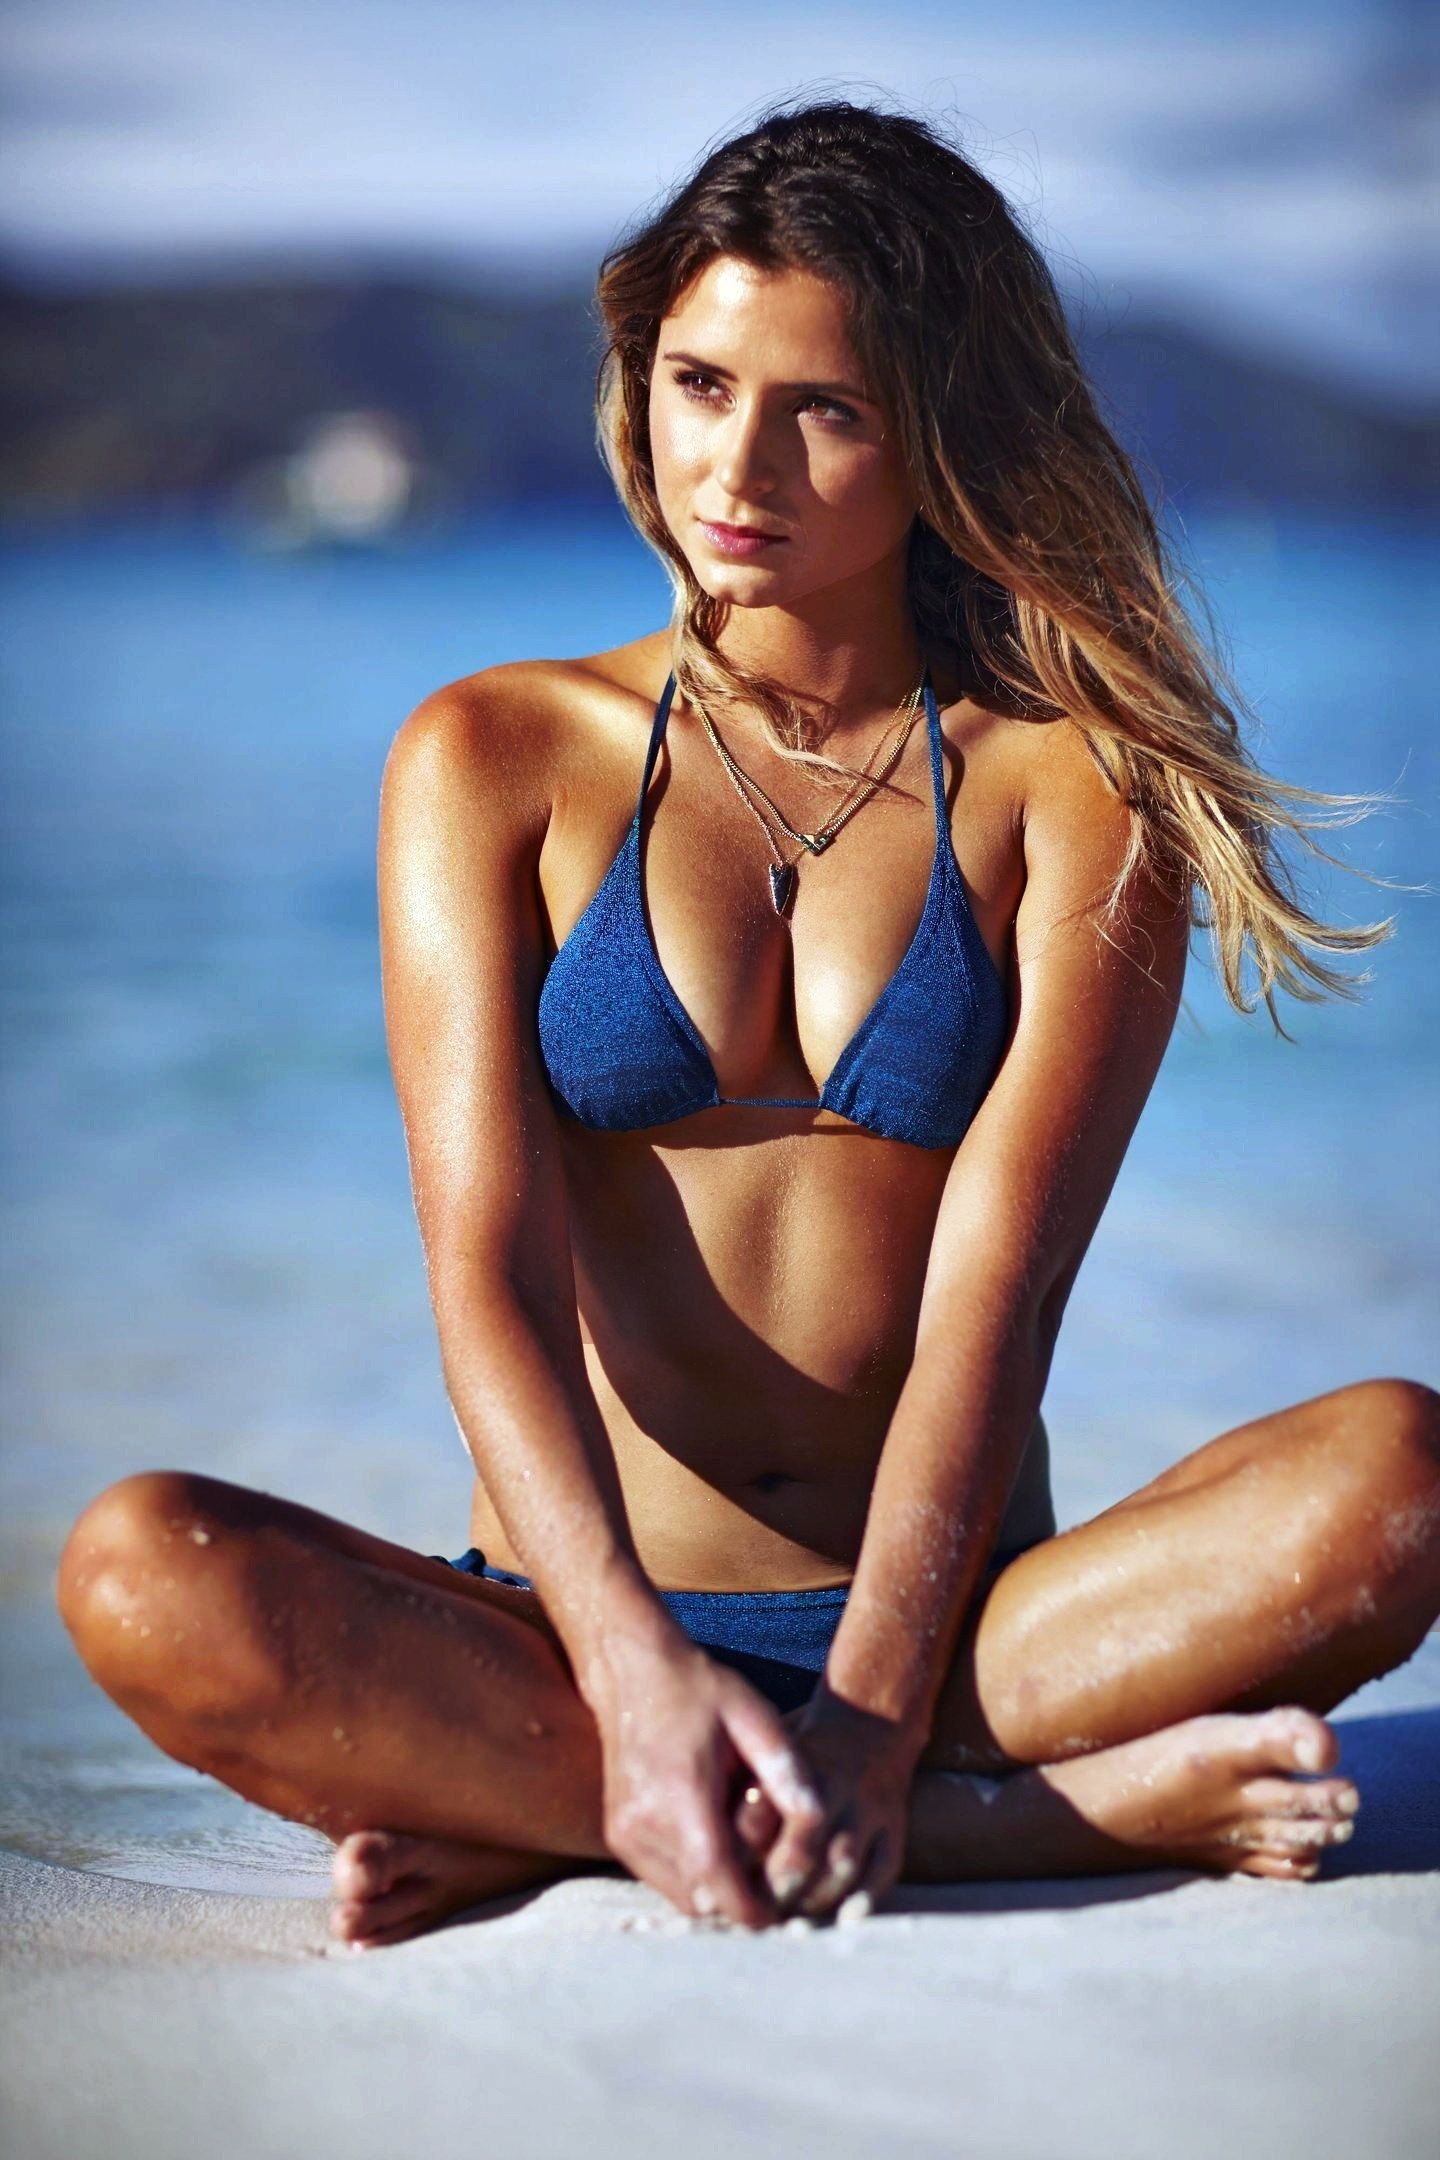 Anastasia Ashley Hot in Blue Bikini